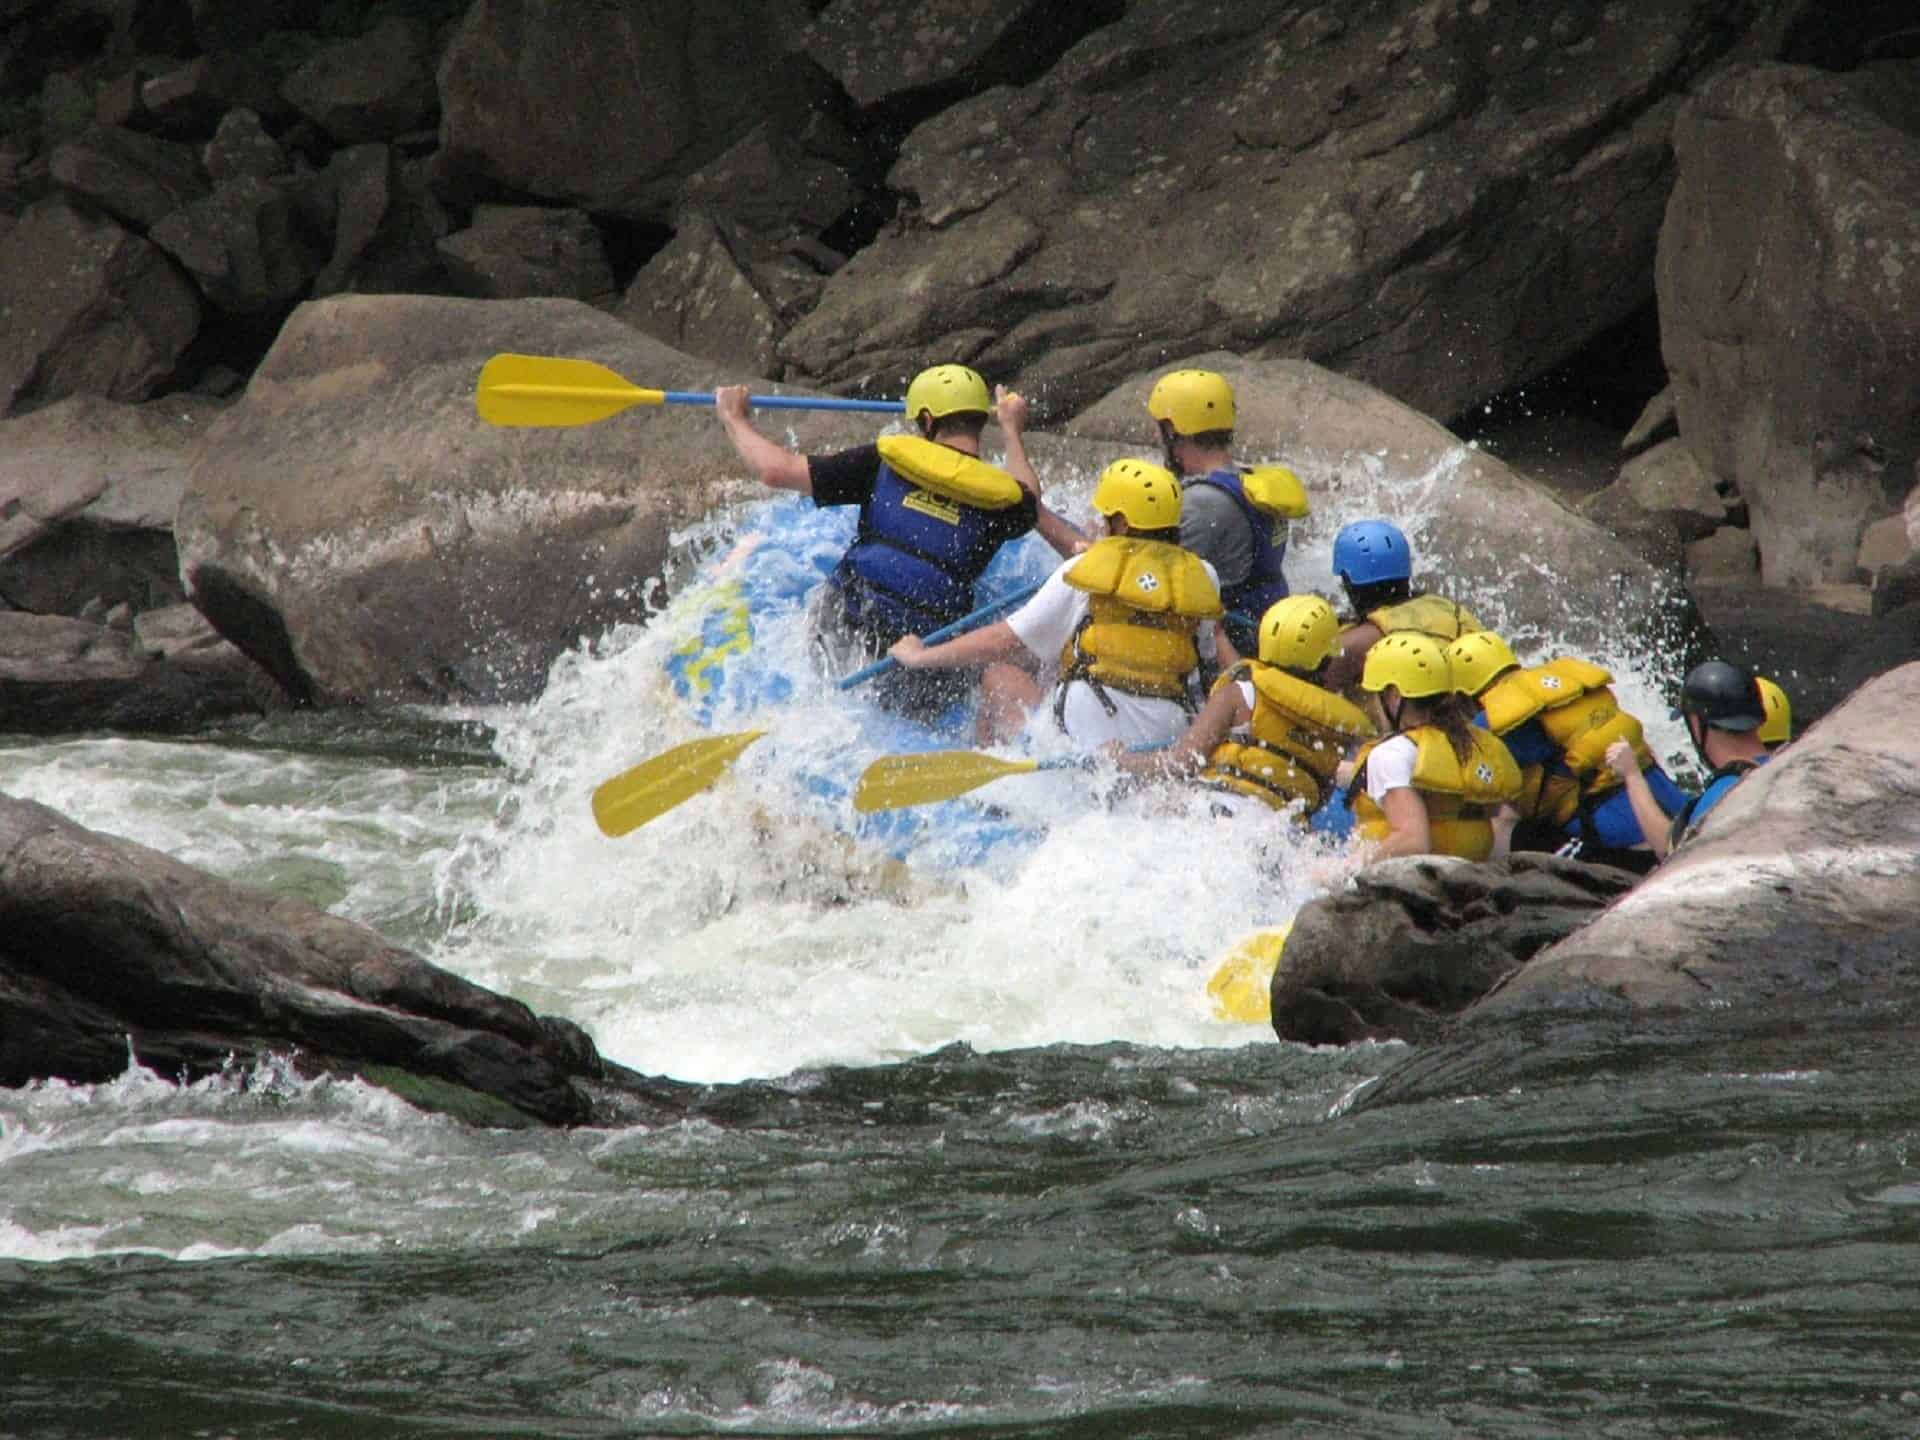 Rafting at Beas river, Kullu, India